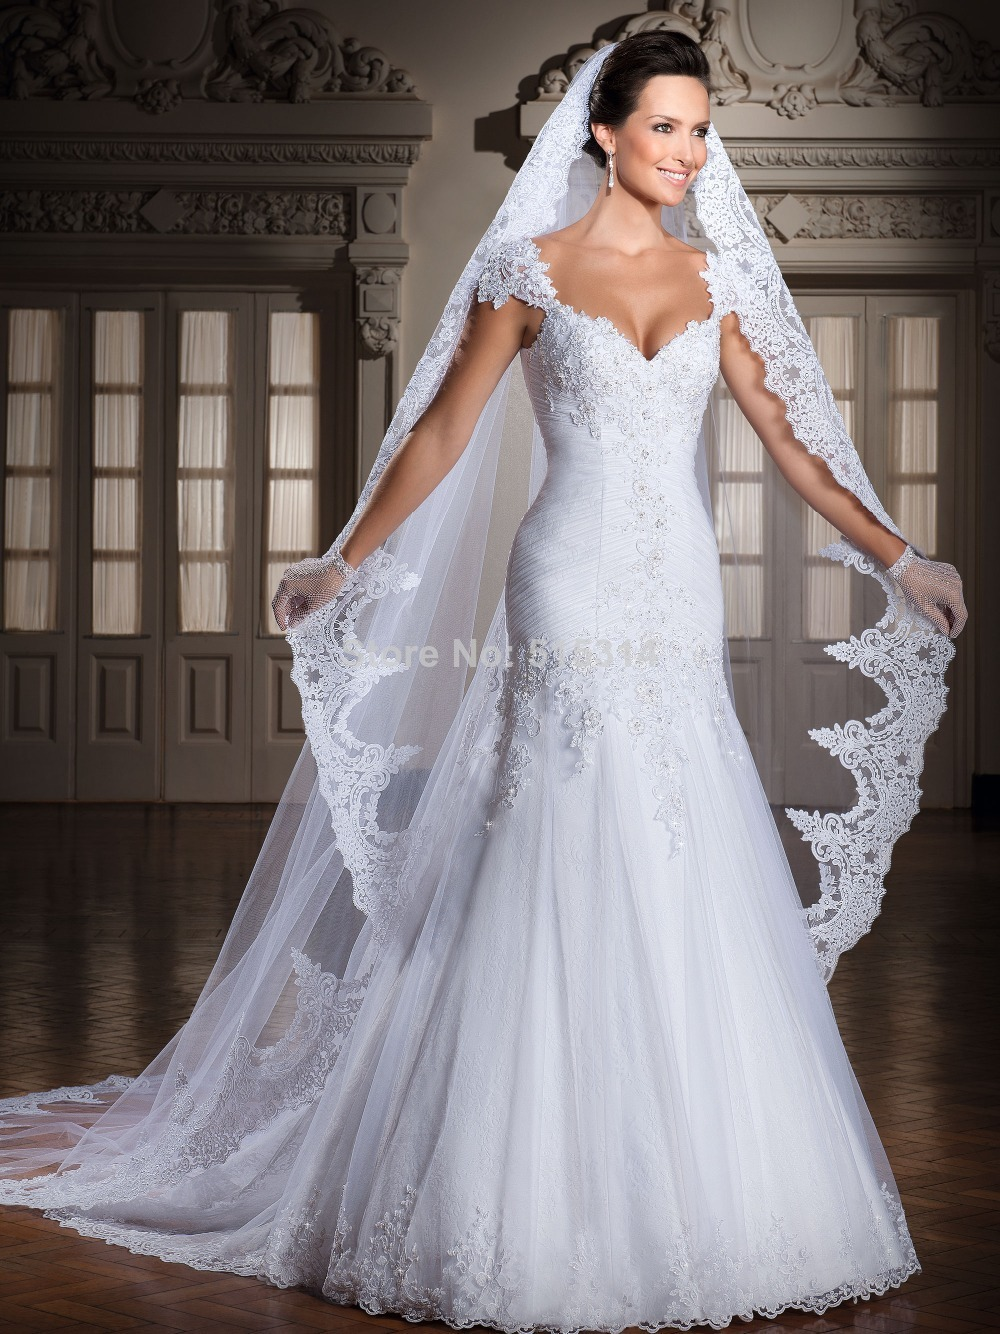 Custom Made 2016 New Design A Line Backless Sweetheart Lace Bridal Gown White Vestido De Noivas Free Shipping Wedding Dresses